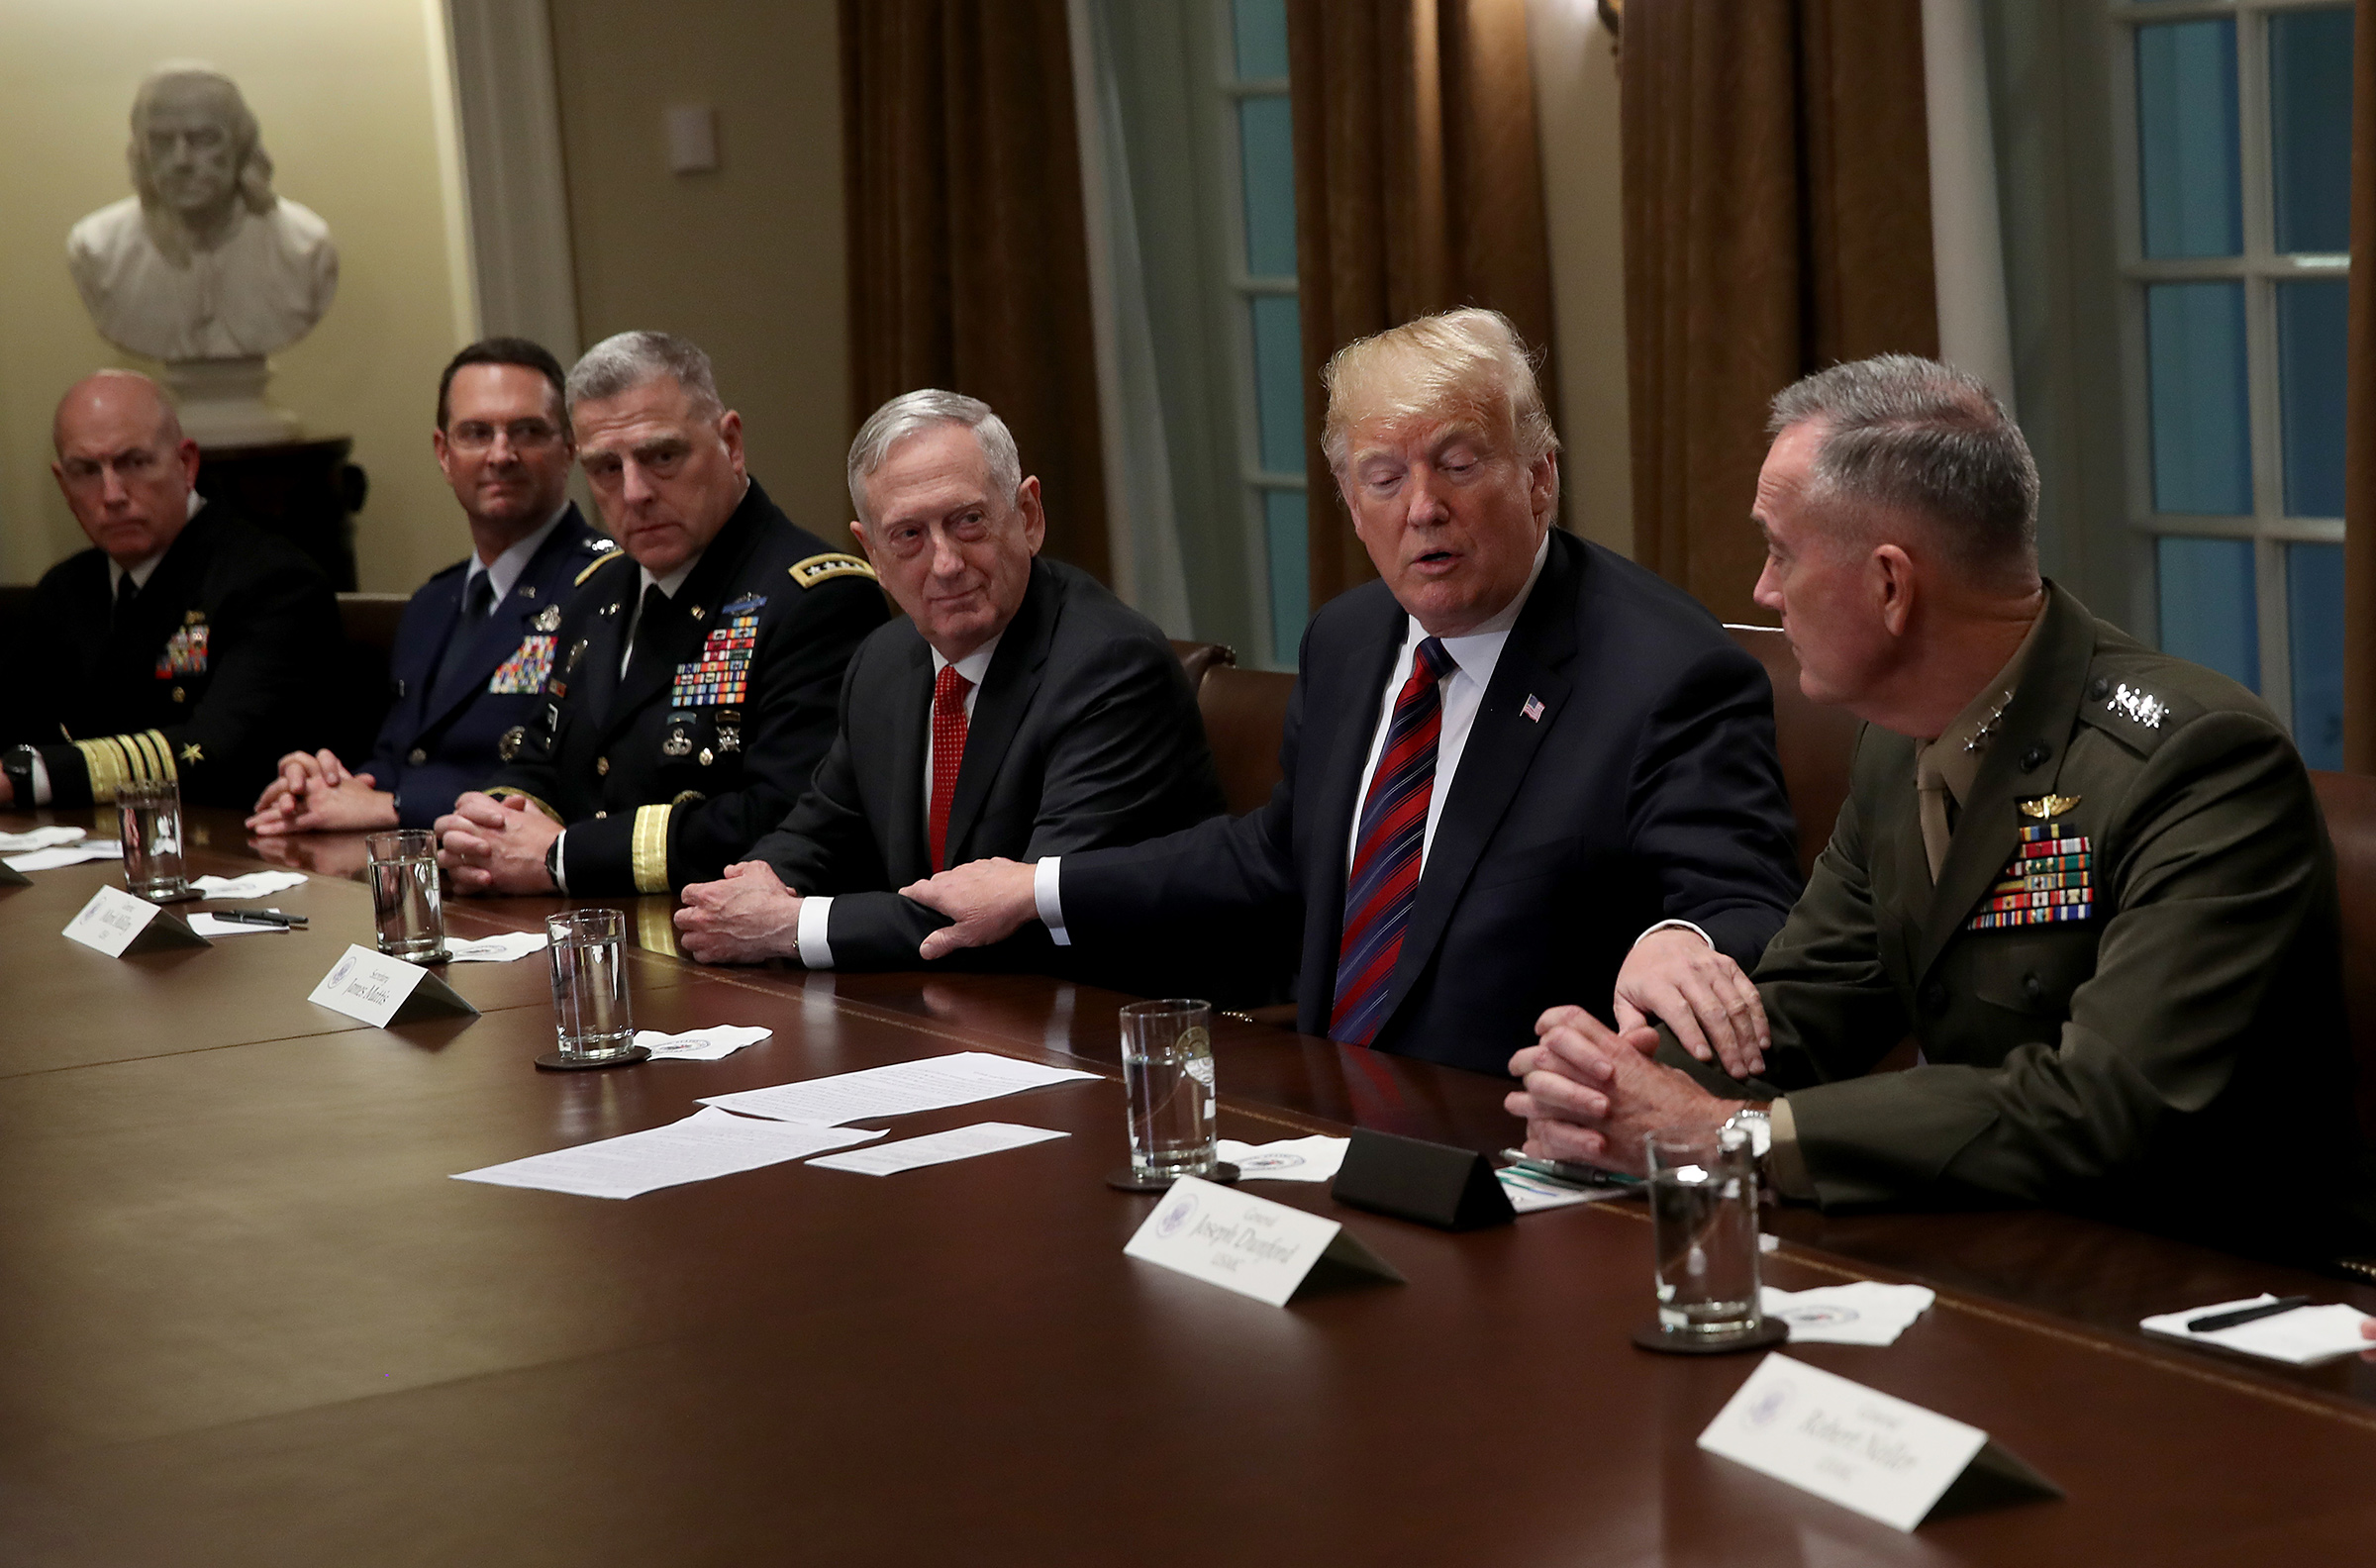 President Trump during a meeting with U.S. military leaders in 2018